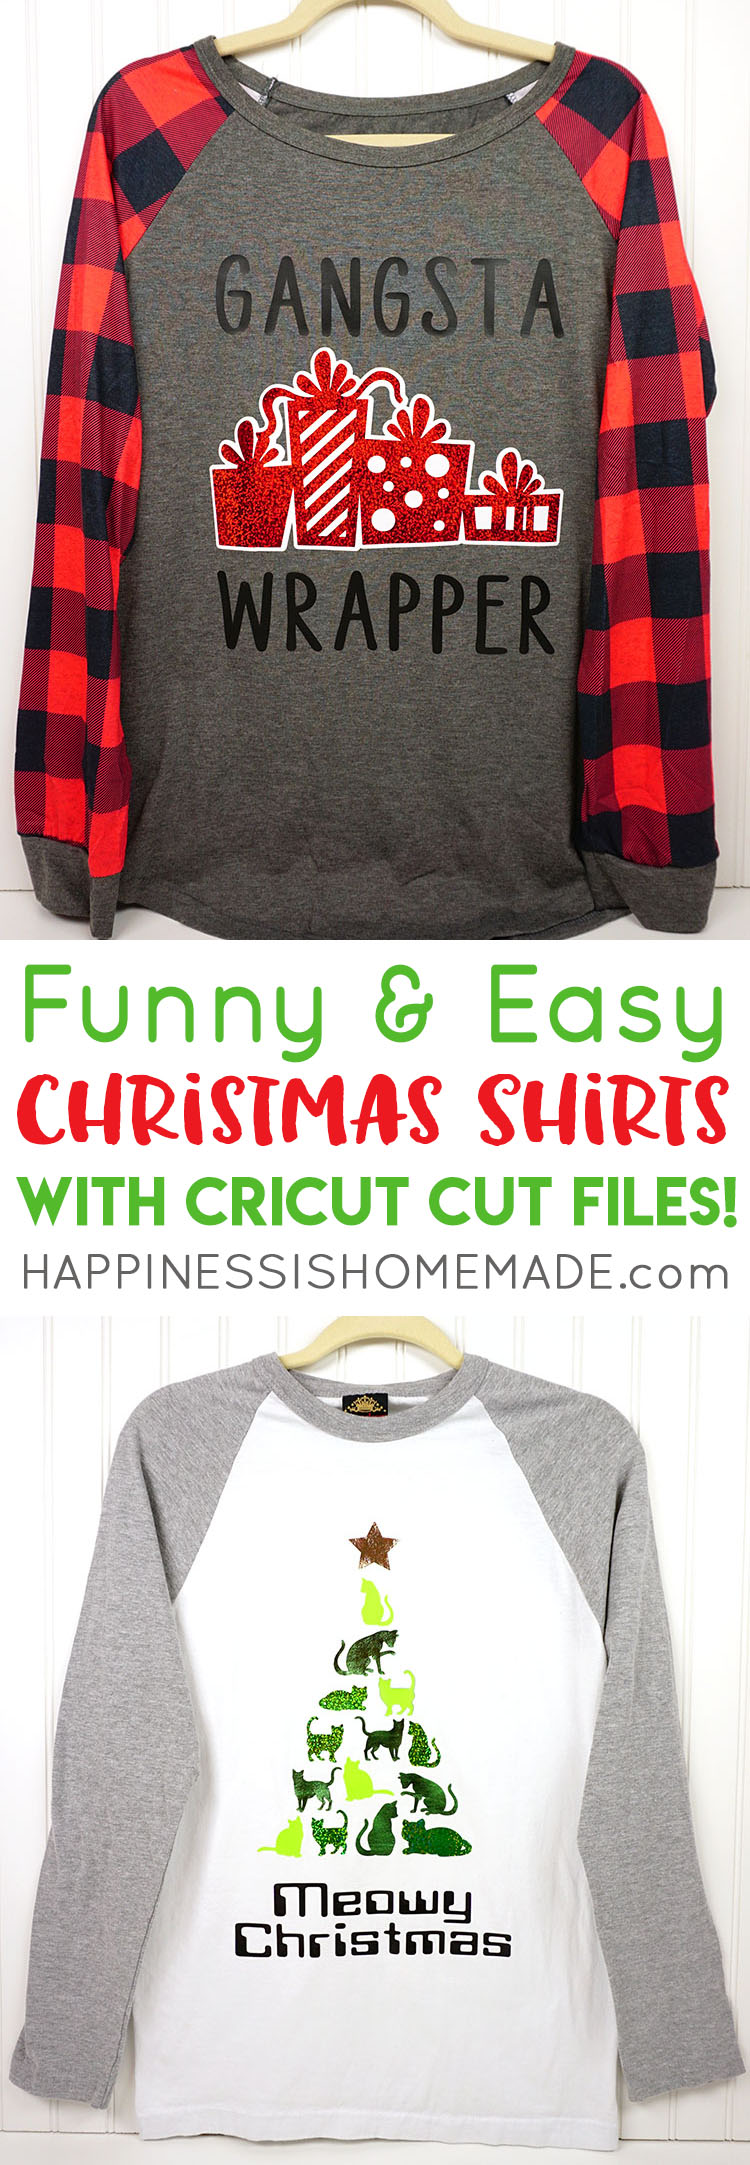 1bb4d25b1 Funny Christmas Shirts with Cricut + Cut Files! - Happiness is Homemade